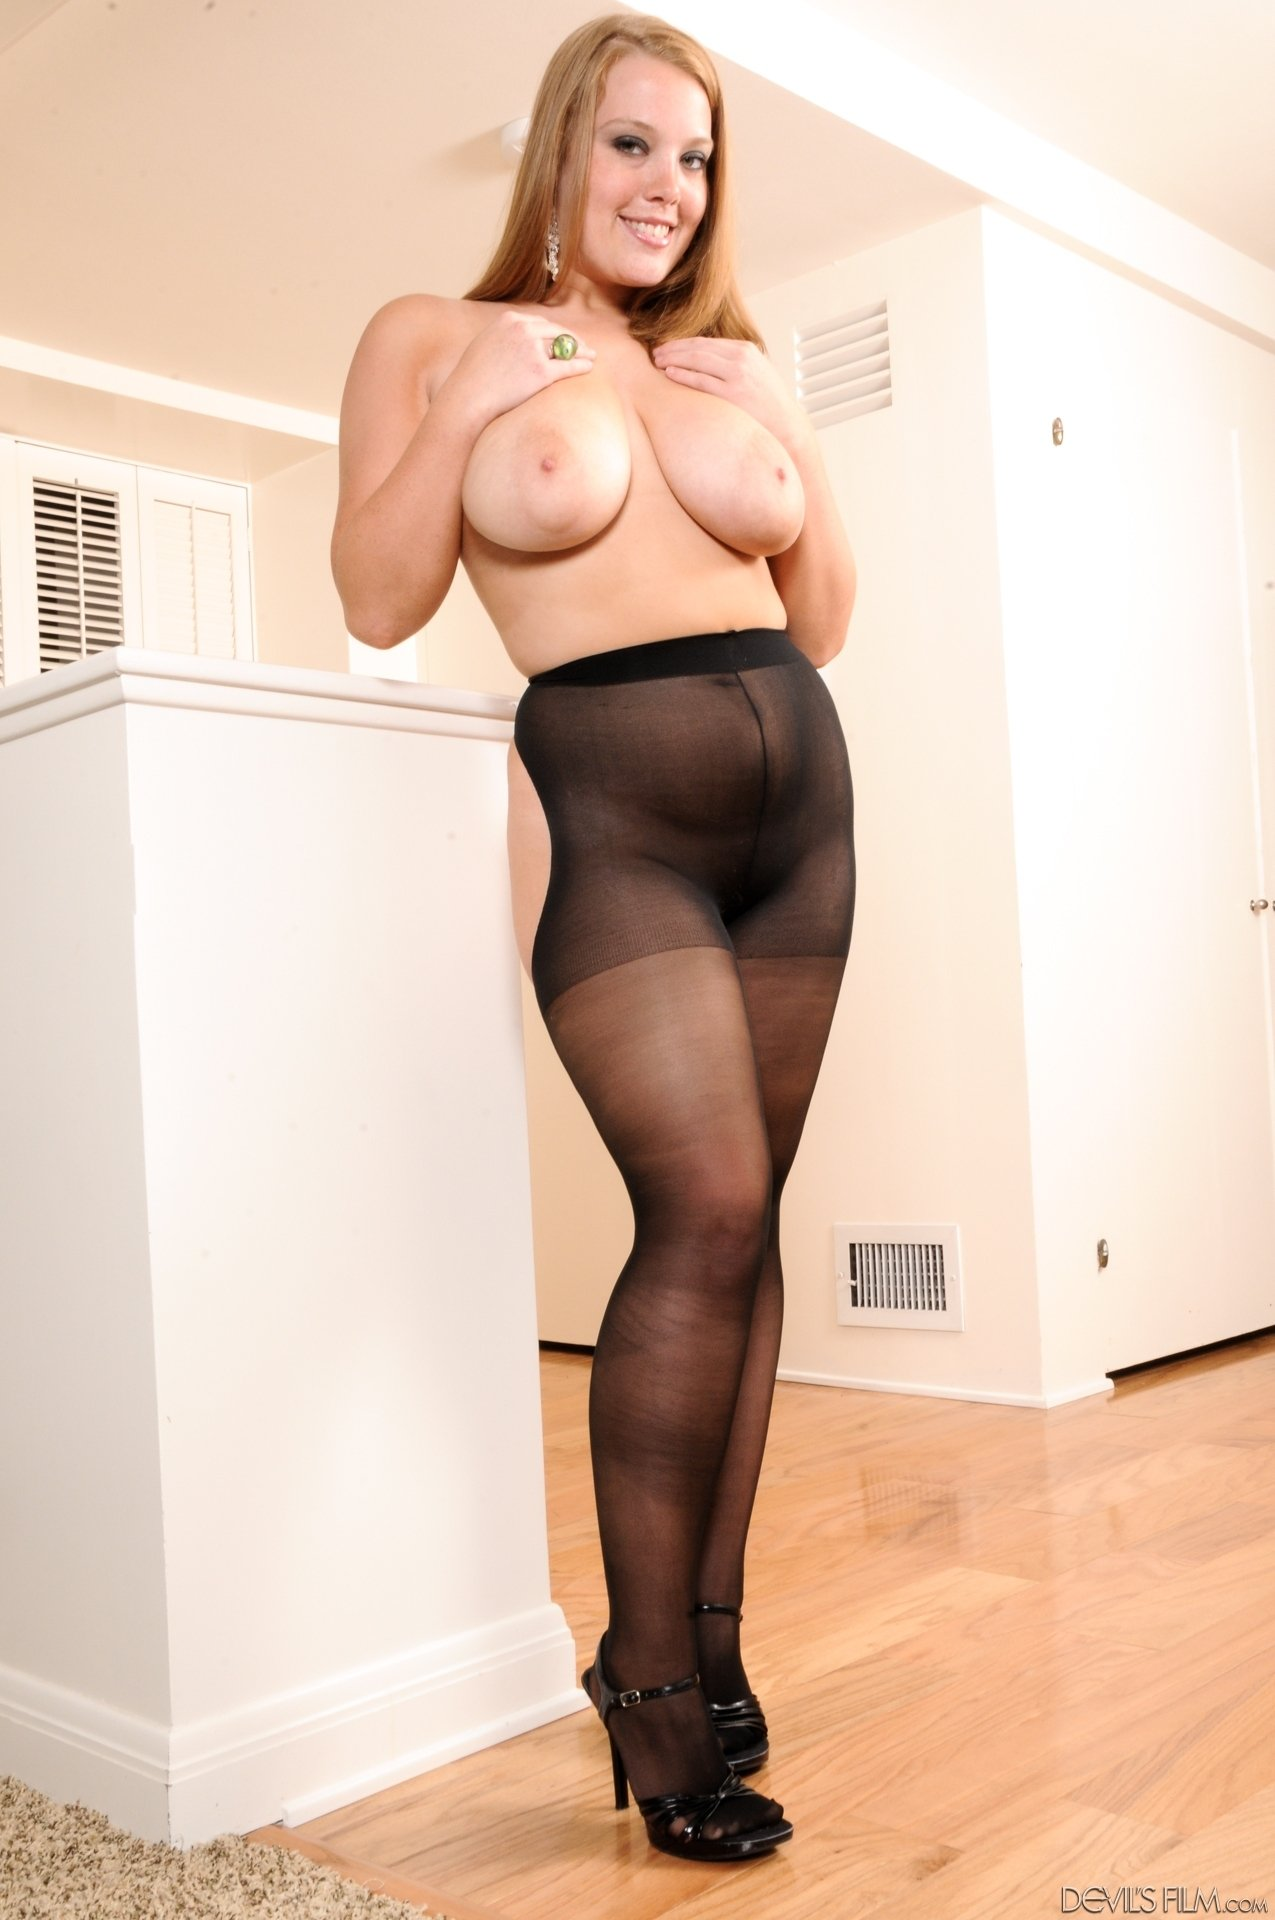 Boobs and pantyhose